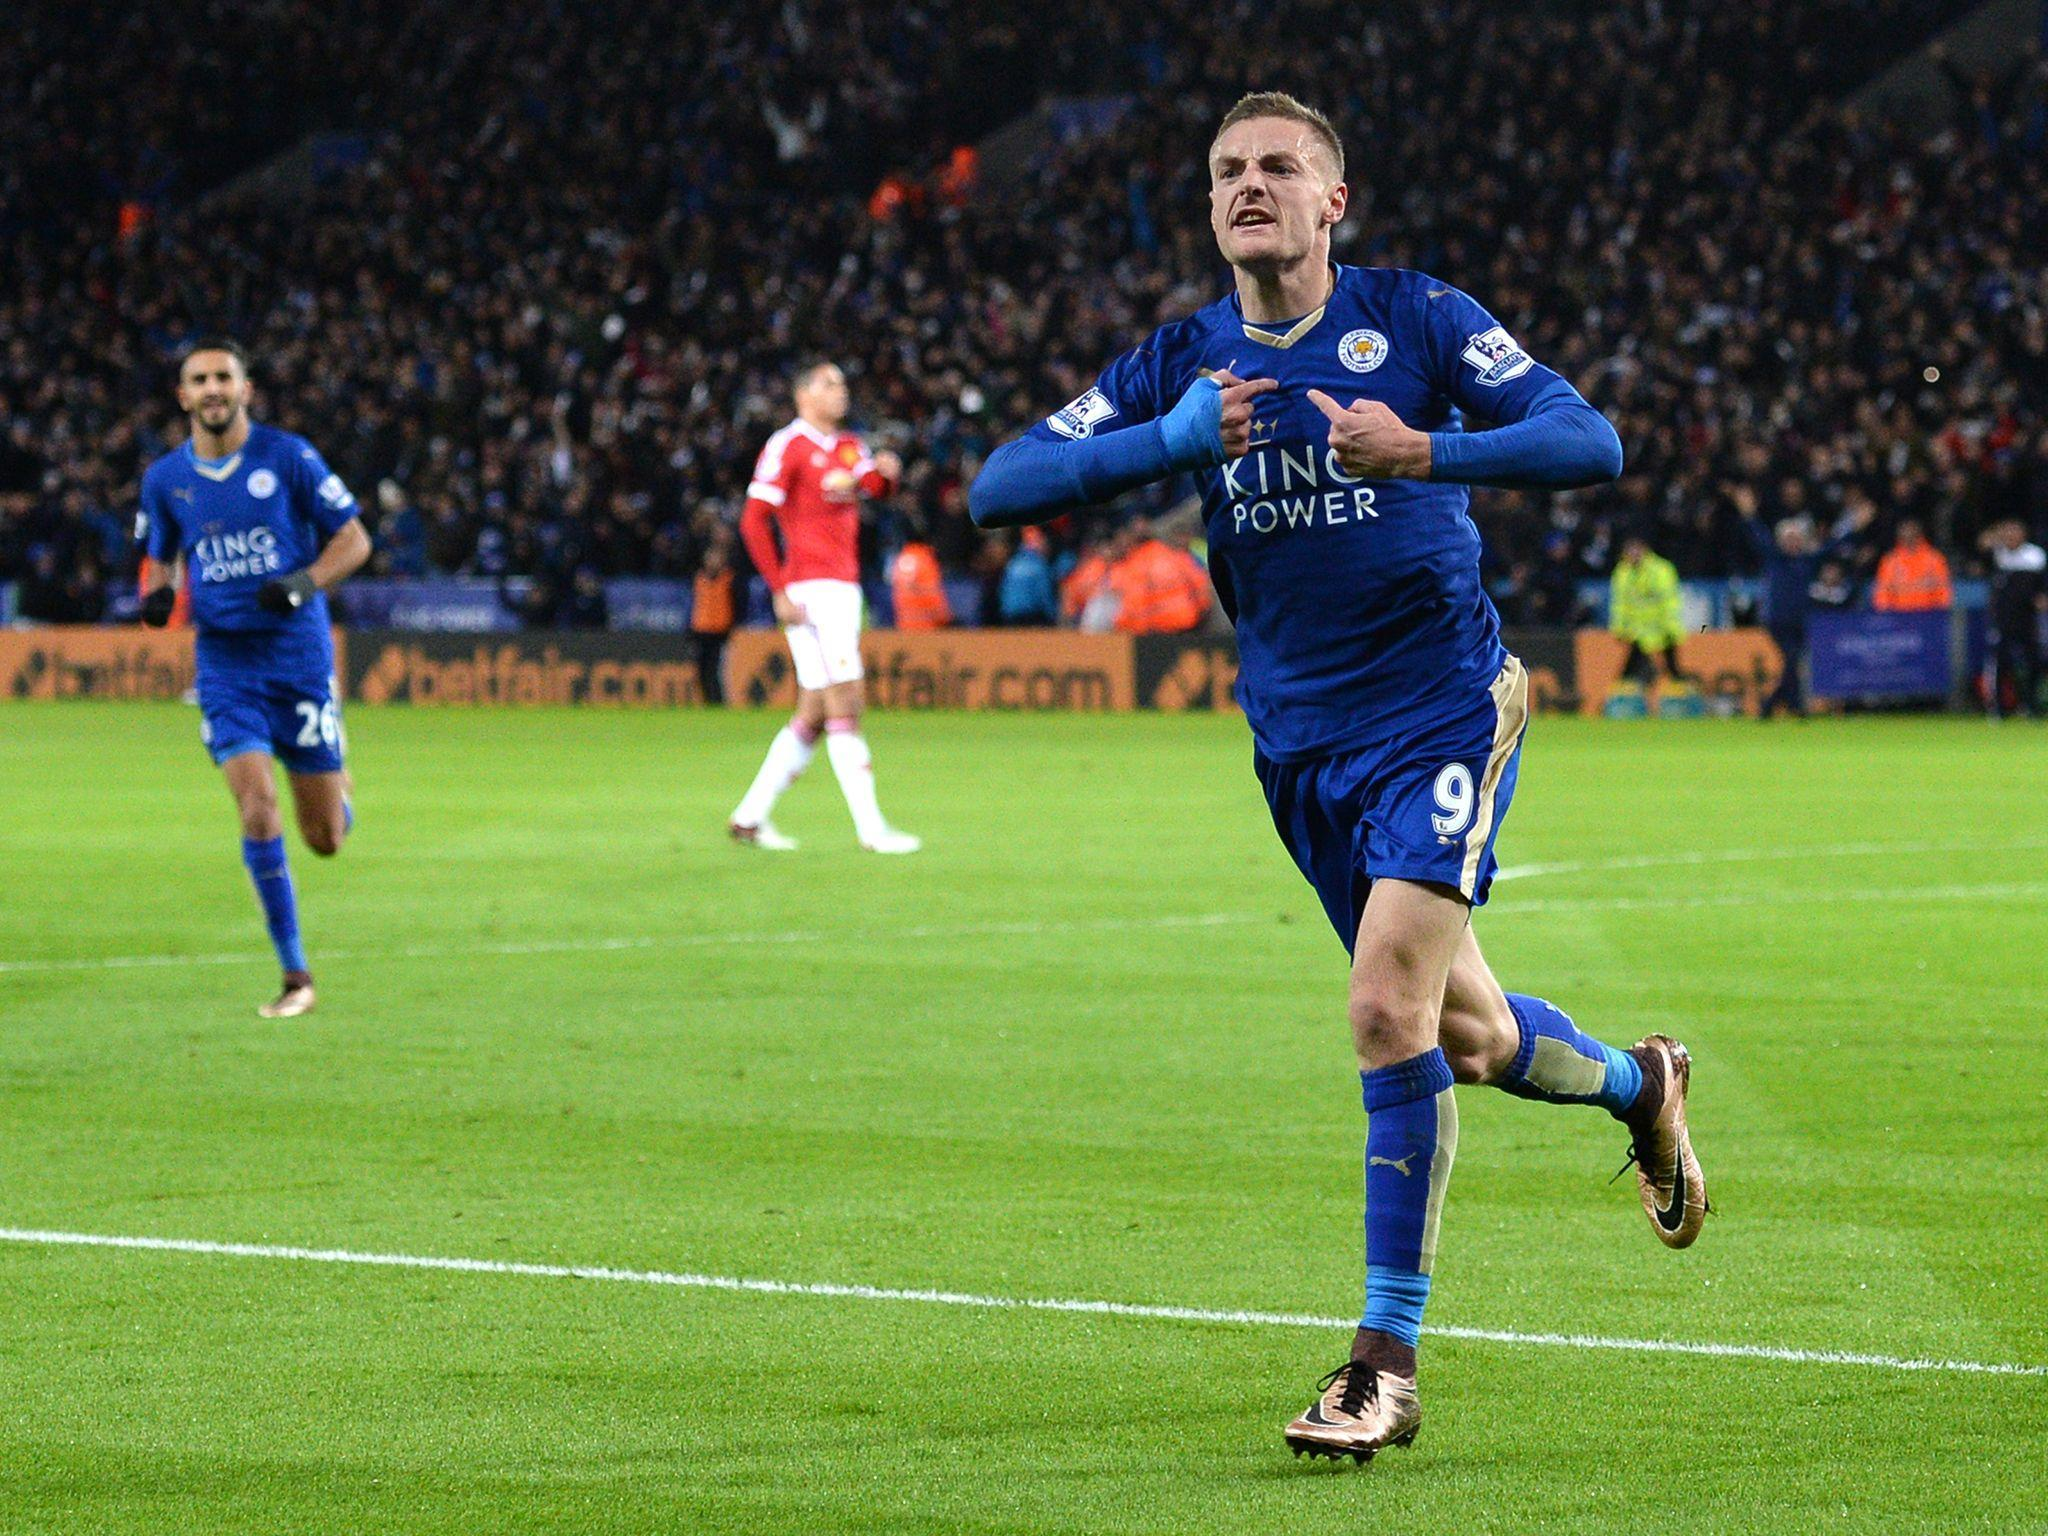 Wallpaper Jamie vardy, Footballer, Leicester city HD, Picture, Image